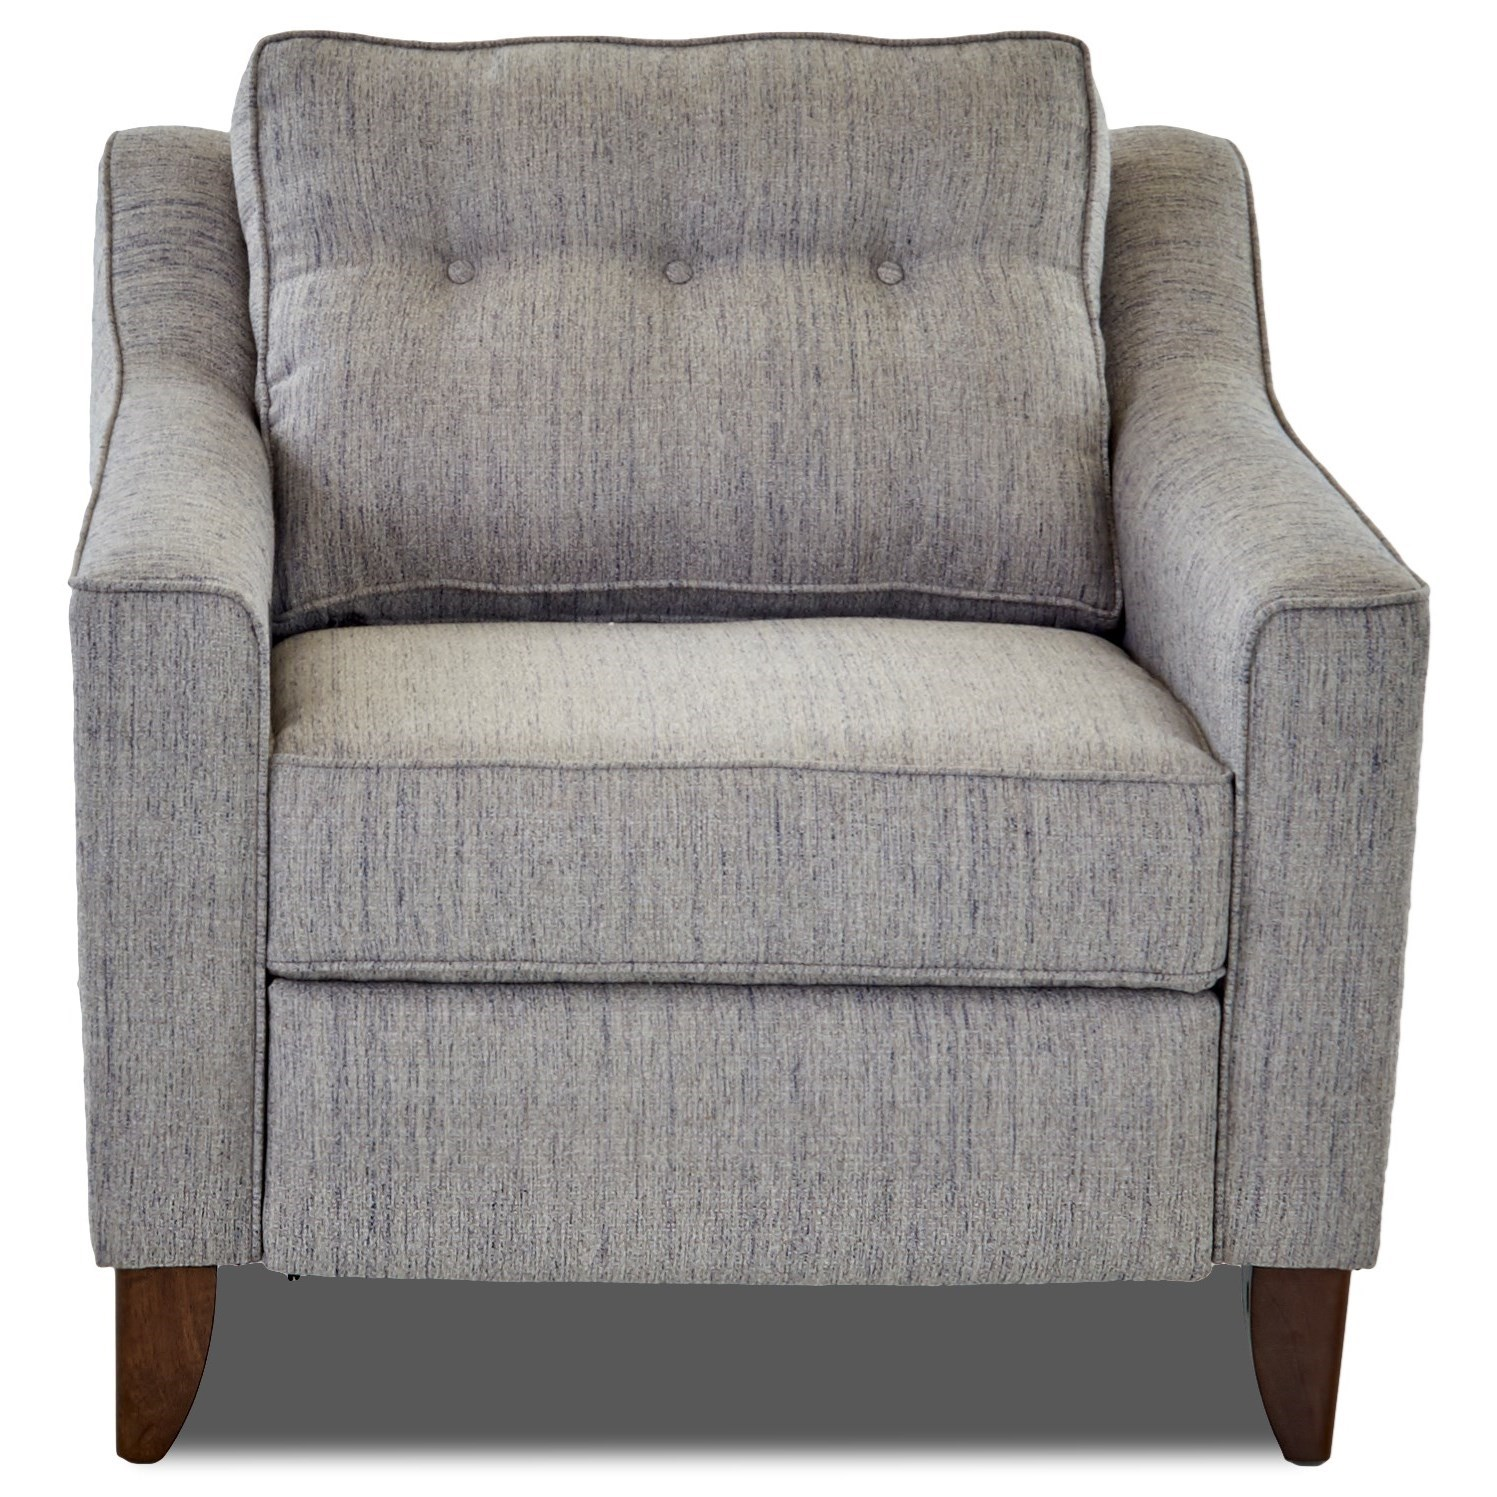 Audrina Power Reclining Chair by Klaussner at Lapeer Furniture & Mattress Center